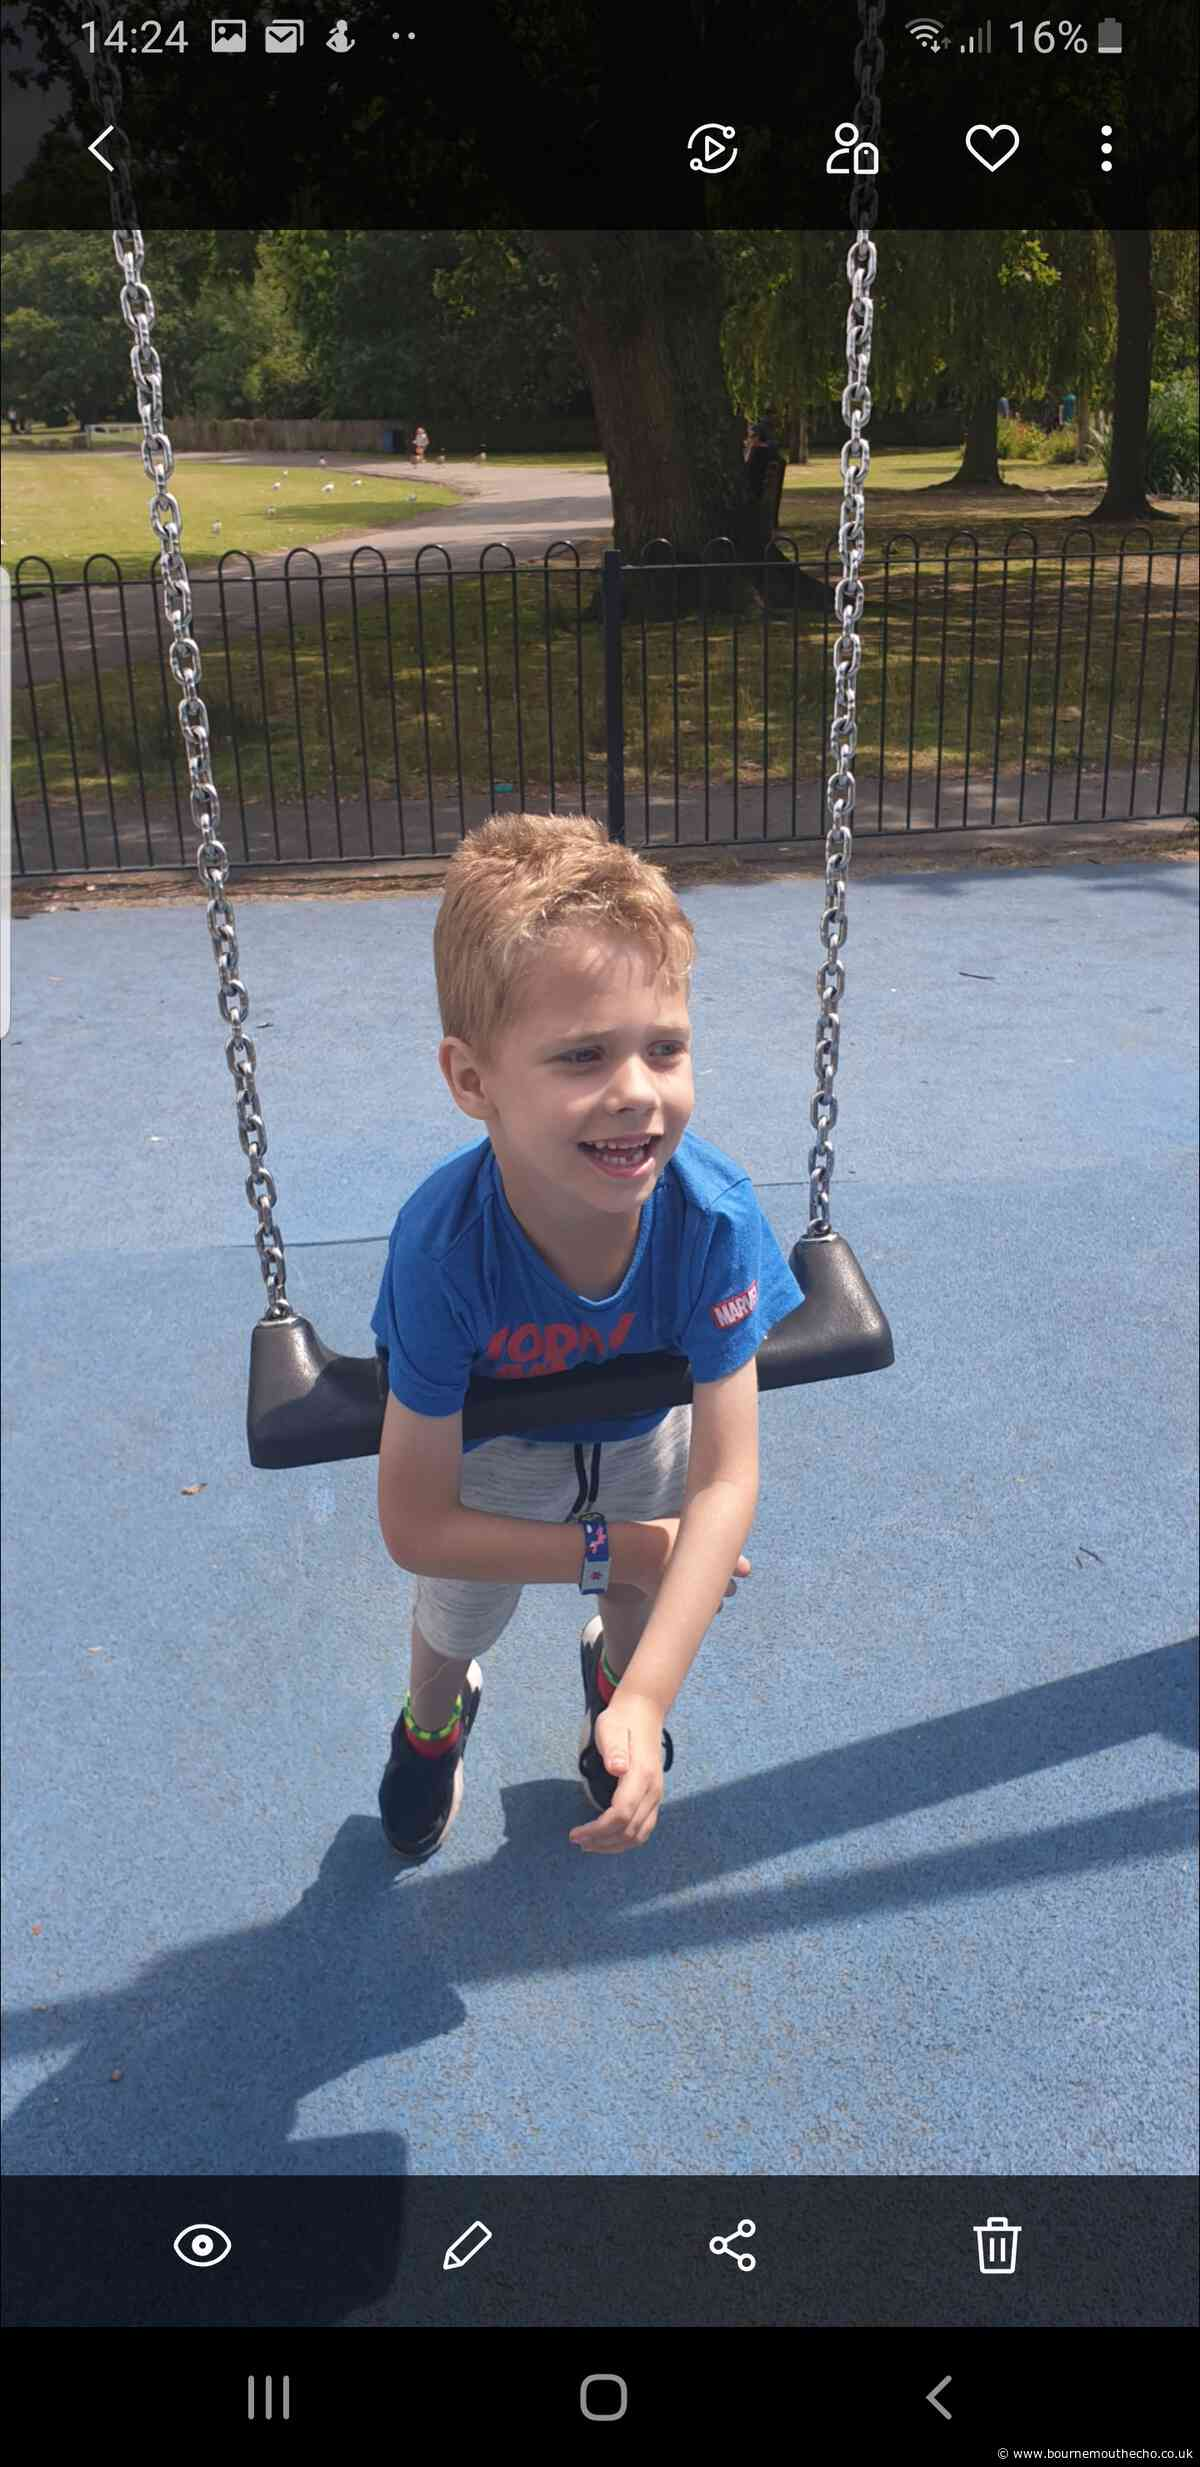 'He's our Christmas miracle': Bobby, six, makes full recovery after cardiac arrest